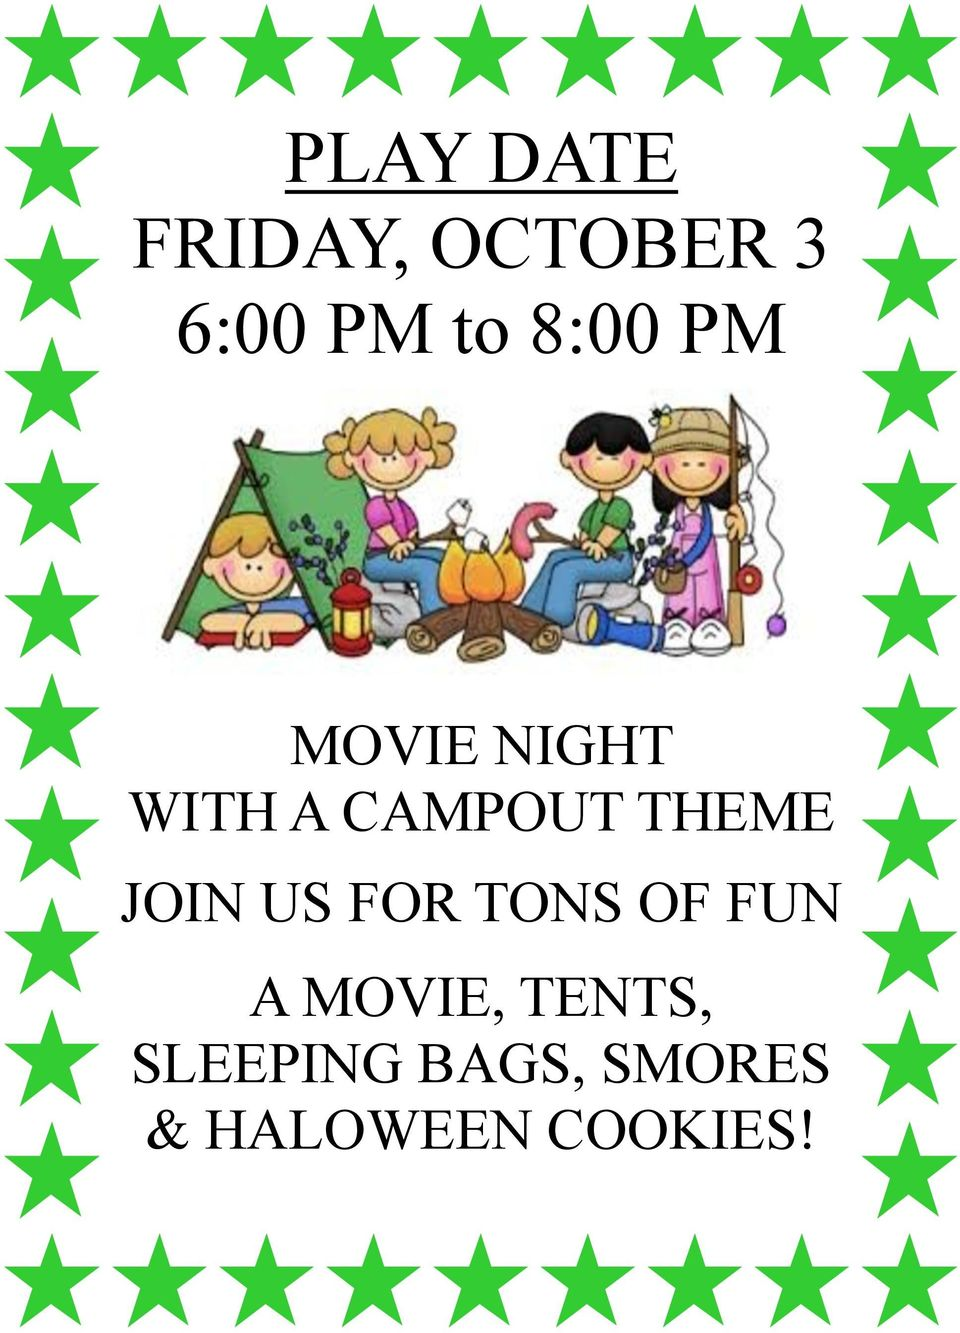 JOIN US FOR TONS OF FUN A MOVIE, TENTS,